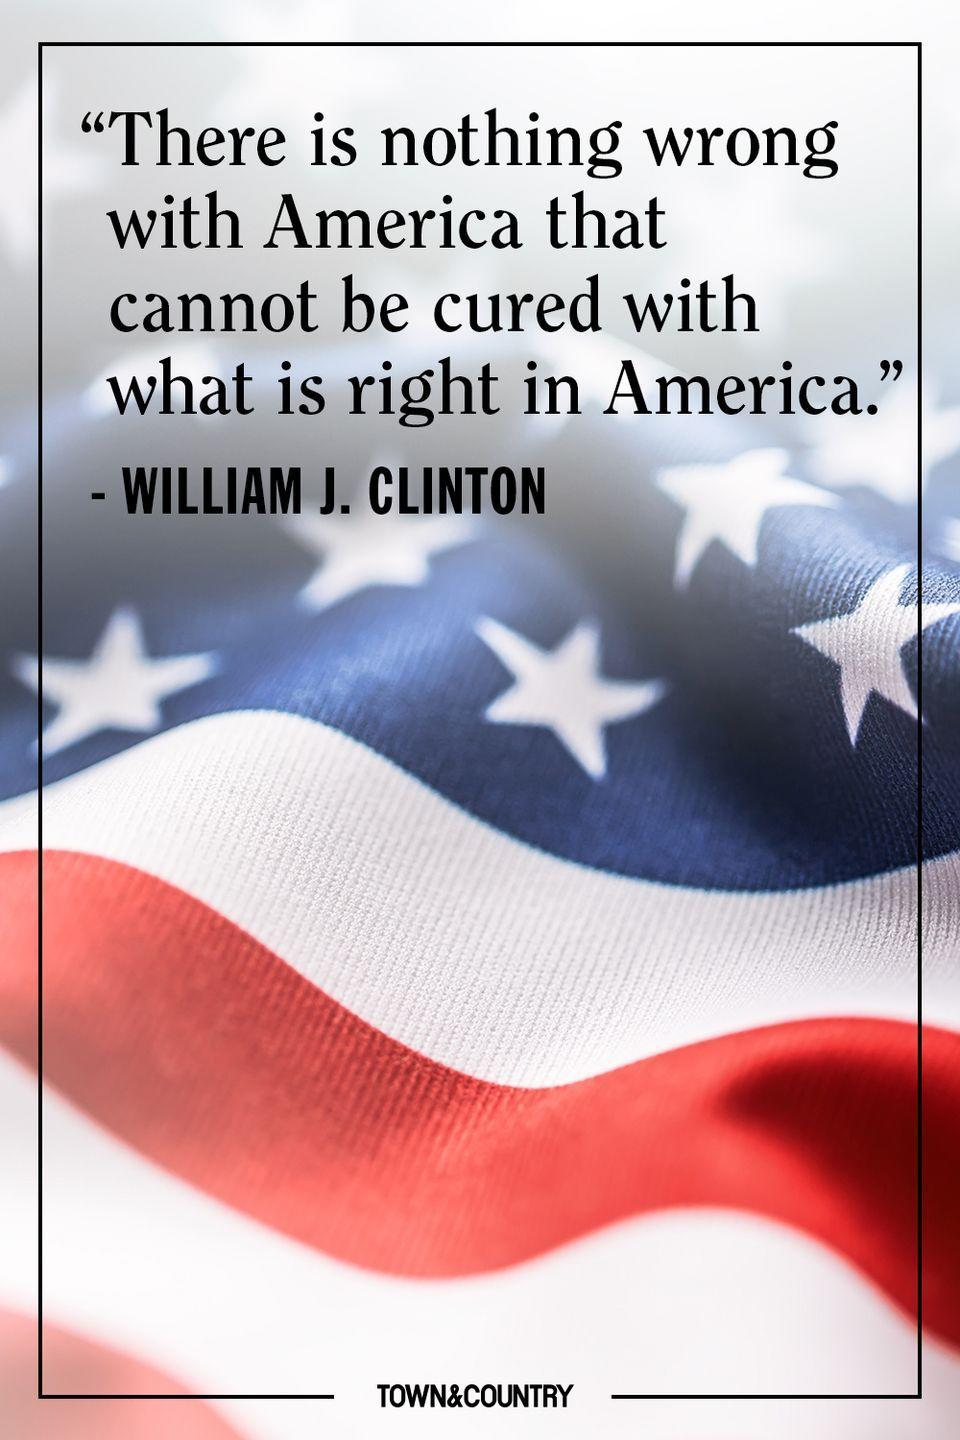 "<p>""There is nothing wrong with America that cannot be cured with what is right in America.""</p><p>– William J. Clinton</p>"